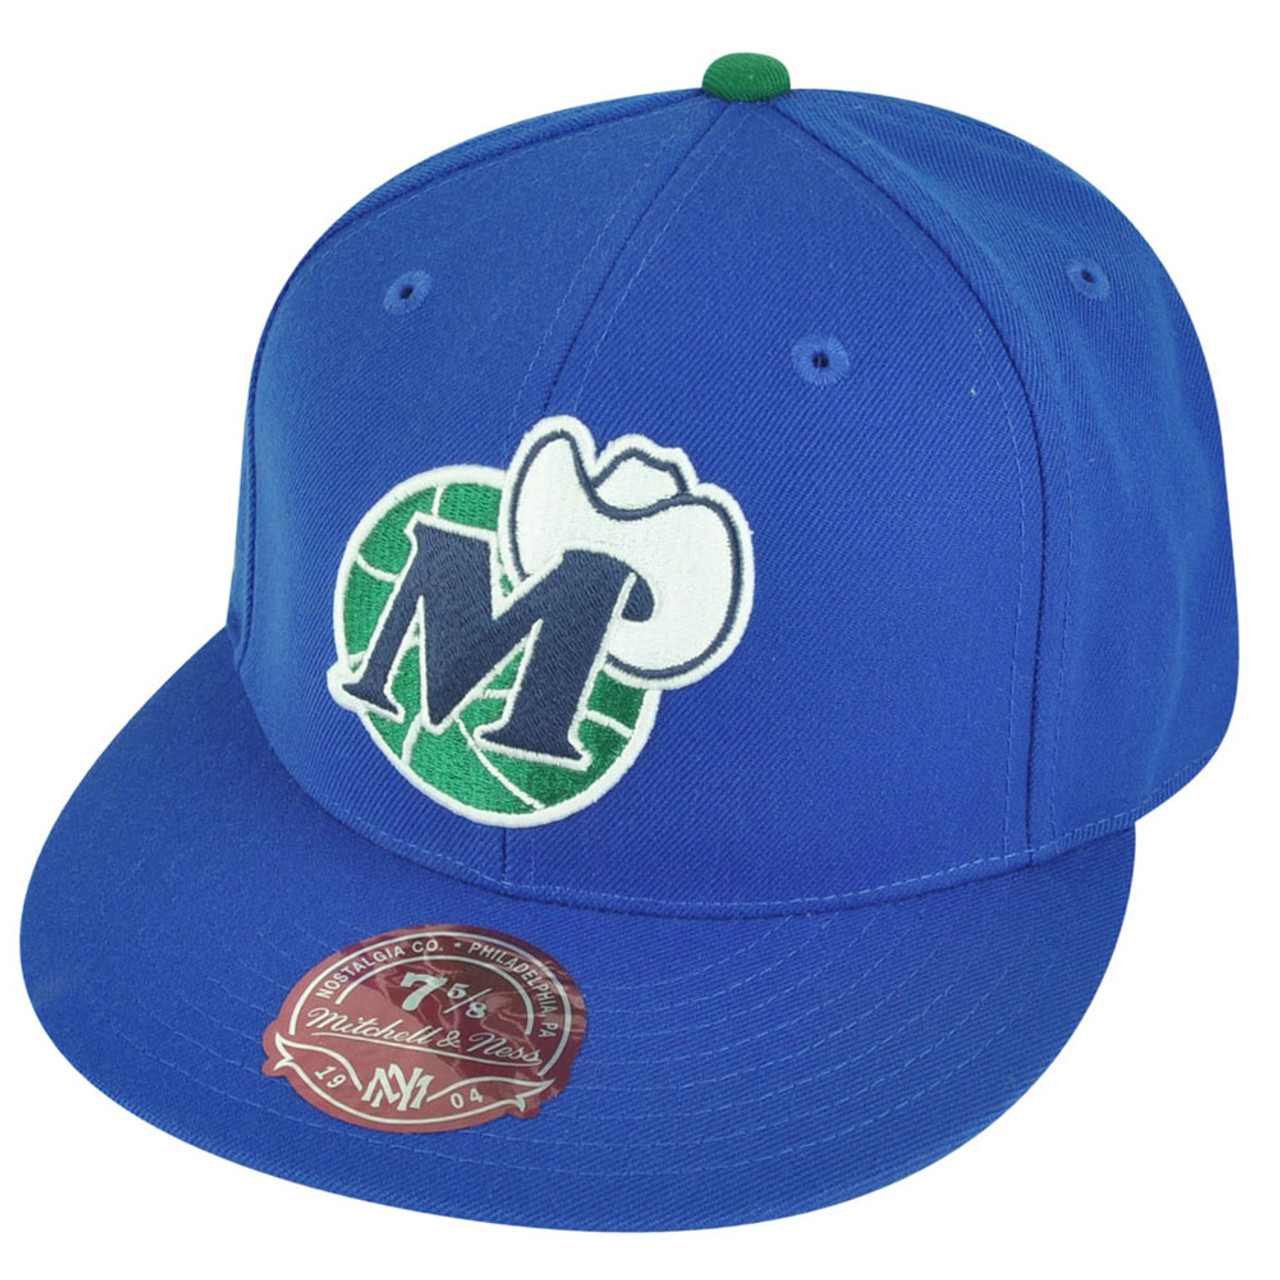 the best attitude 17f7c 25394 NBA Mitchell Ness TK07 Dallas Mavericks Blue Team Second Fitted Hat Cap -  Cap Store Online.com